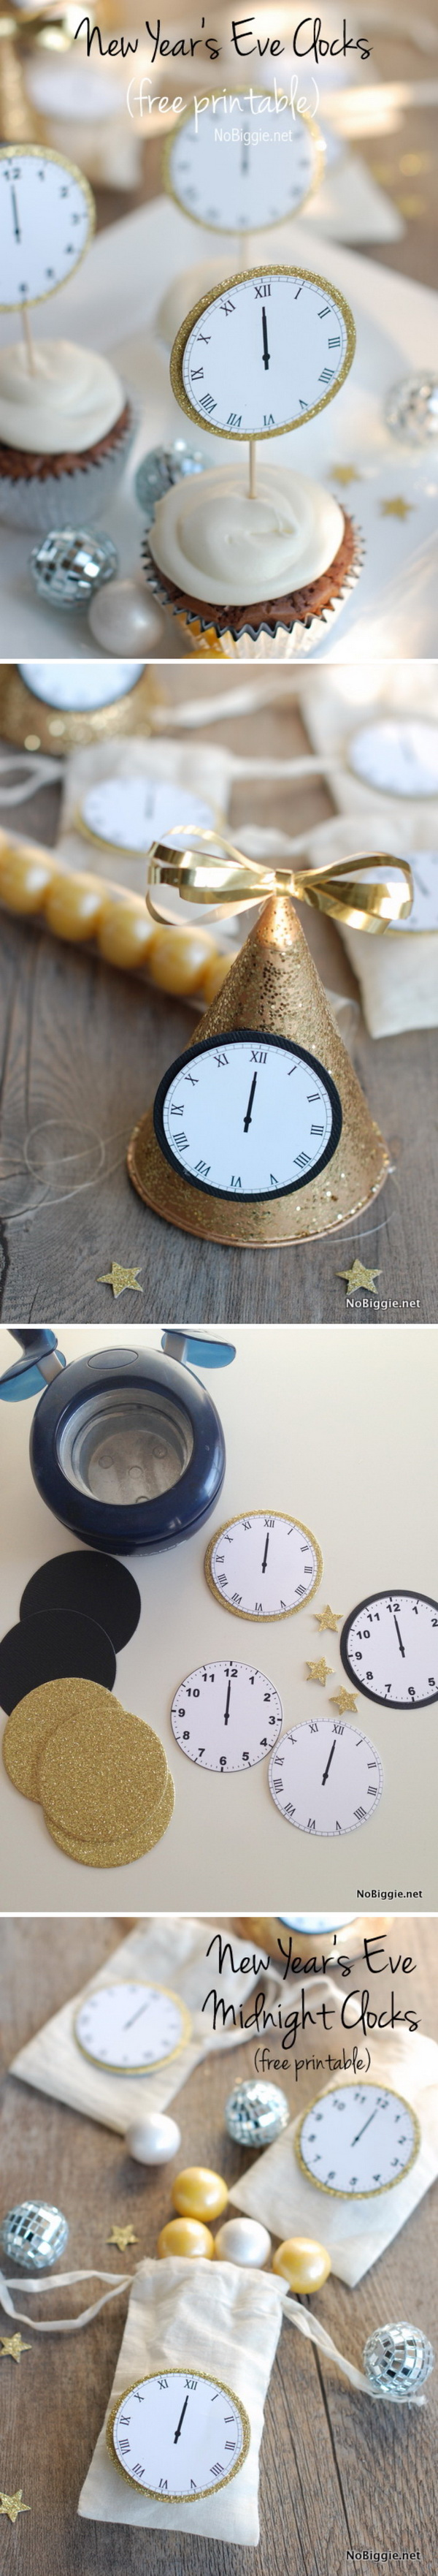 New Year's Eve Midnight Clock Free Printable